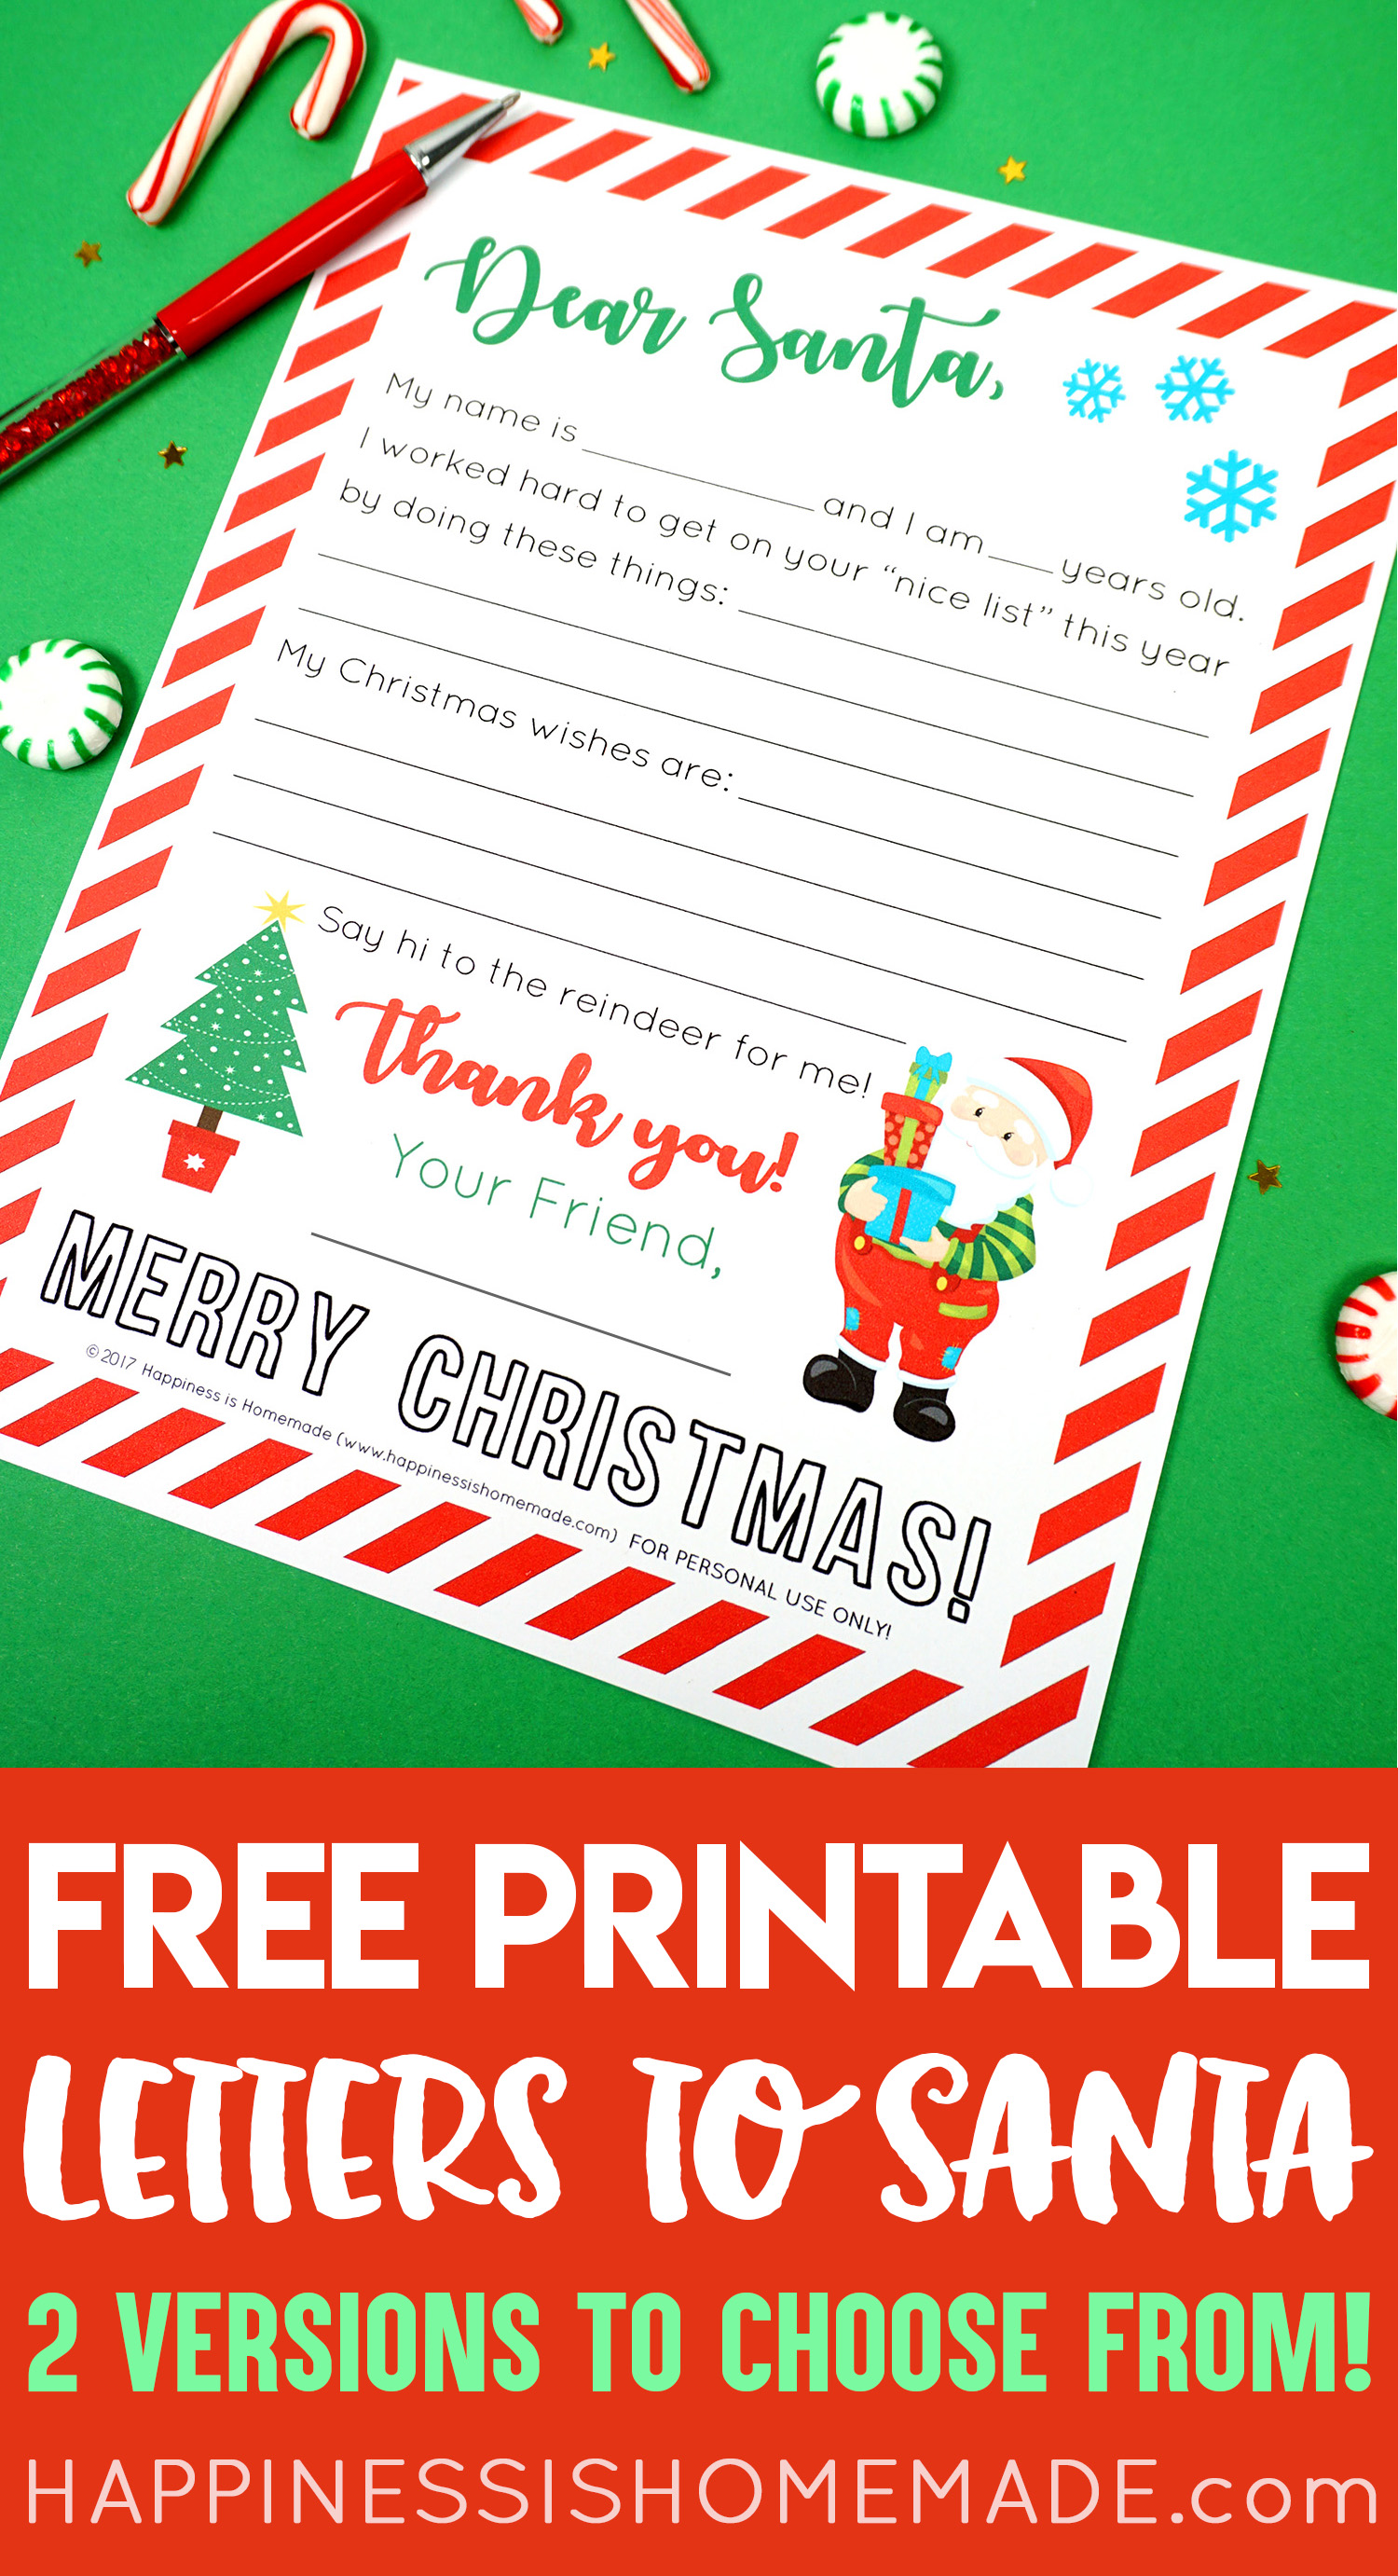 image regarding Printable Letters From Santa titled No cost Printable Letter toward Santa - Contentment is Handmade